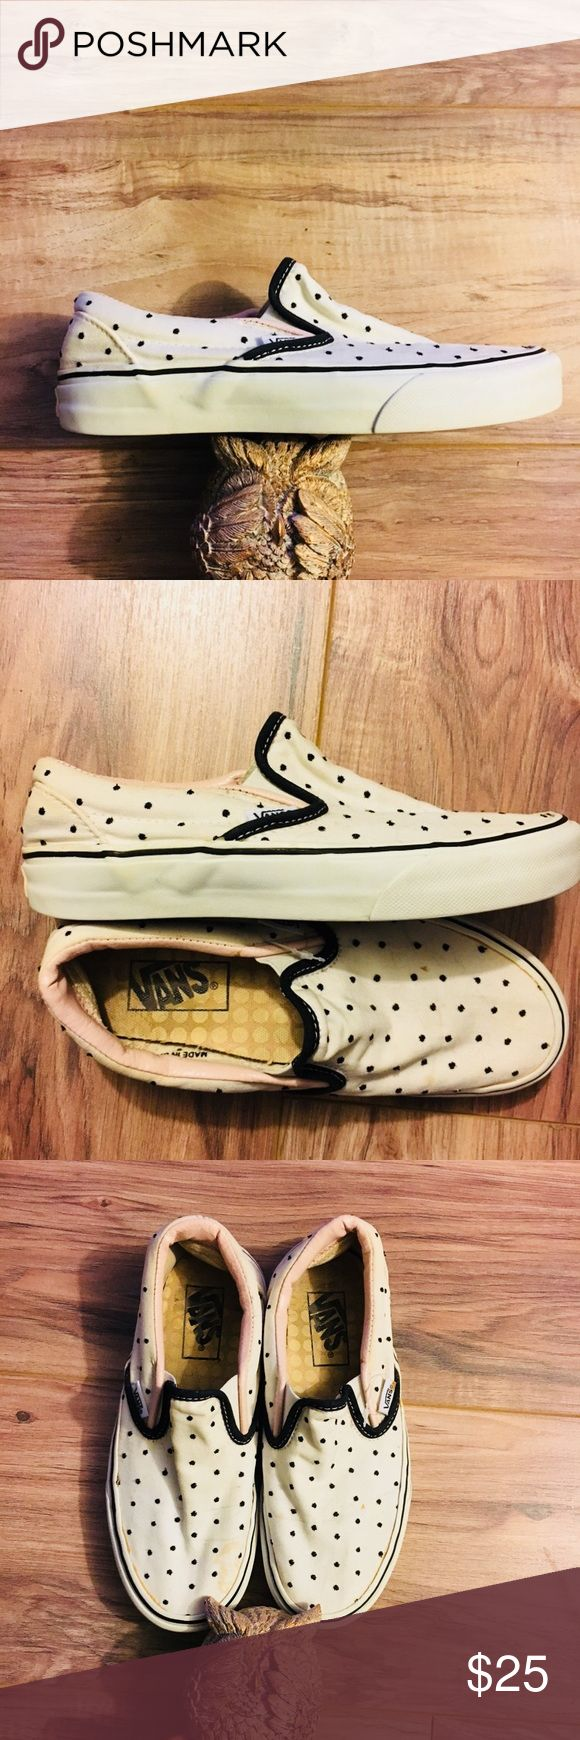 "Women's ""off the wall"" Vans polka dots size 5.5 Minor wear since they don't fit me :( just be aware that they do have a slight smudge on the right pair which could be just from being hidden away in my closet. Otherwise they are adorably cute! I've tried to keep them because I just think they're the cutest but let's be real my foot isn't going to get smaller..   Size 5.5 I'm a 6-6.5 don't be like me and try to fit on them just cause they're on sale!! These are 5.5 and true to size.   Any…"